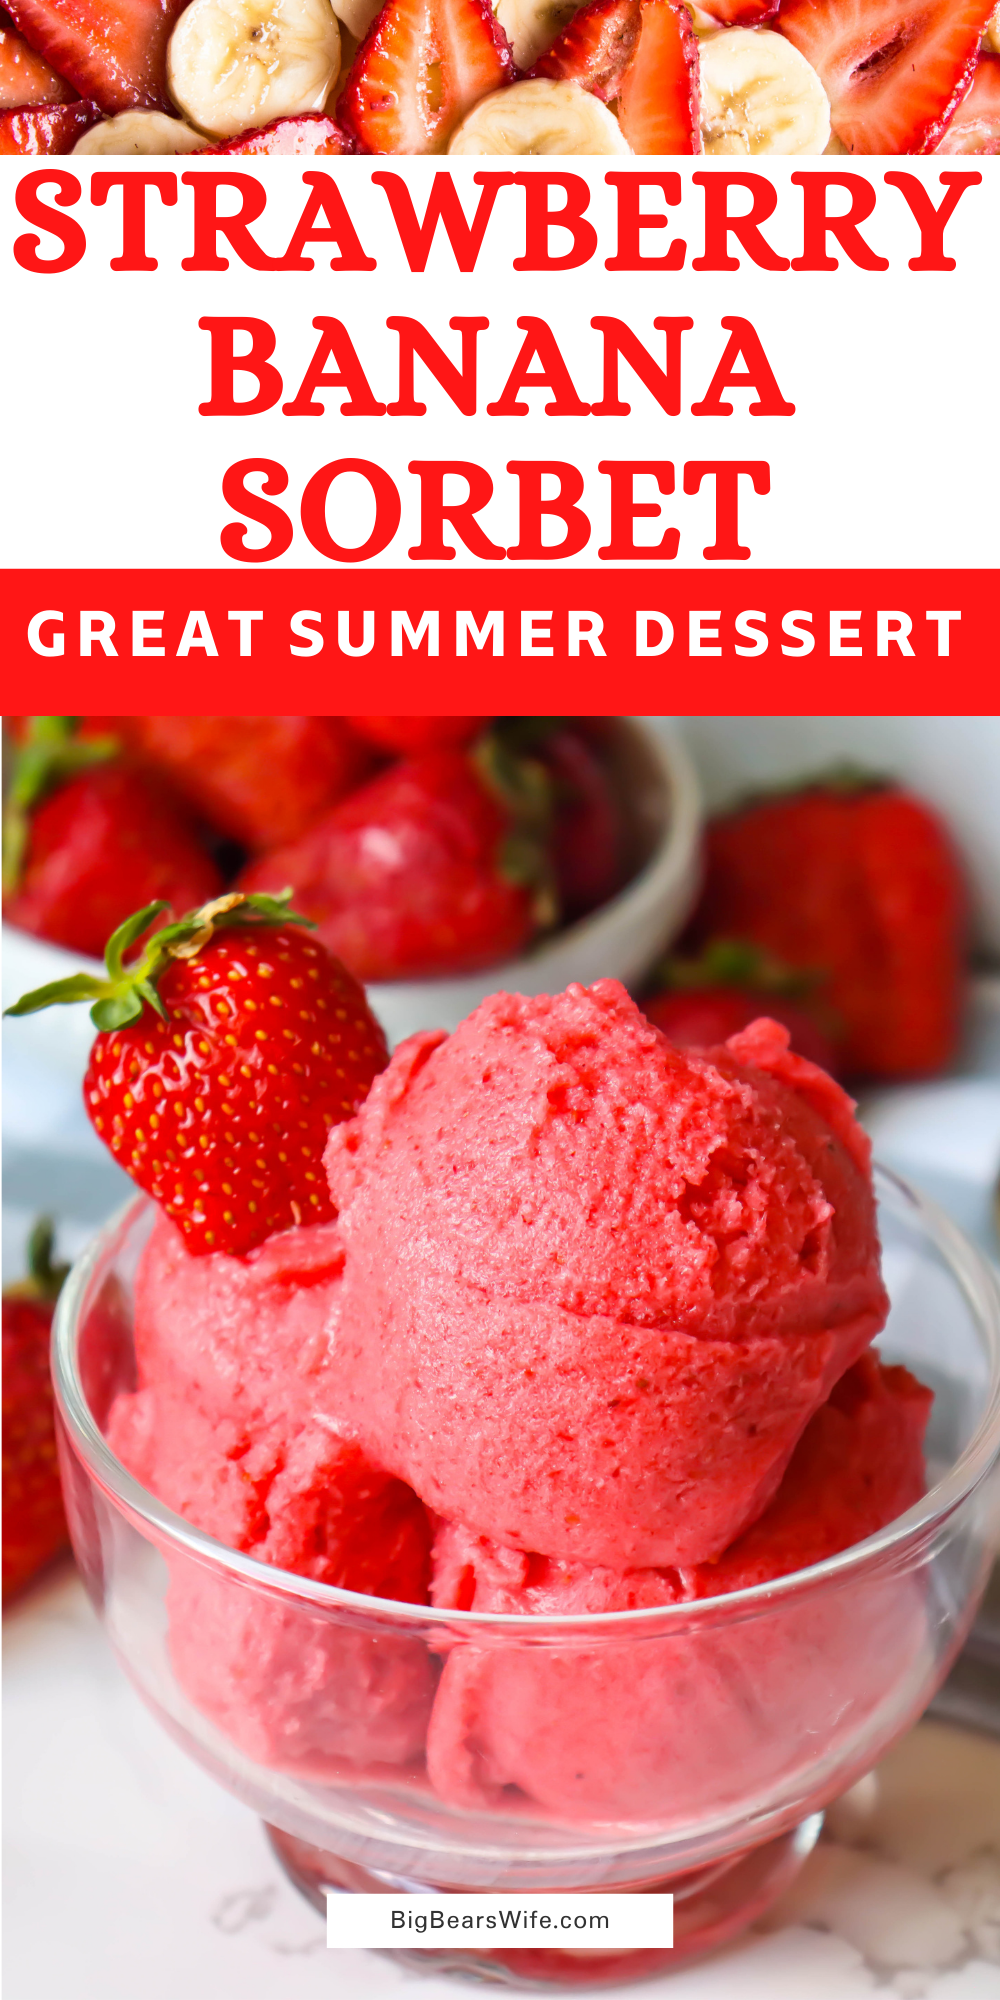 We love making Strawberry Banana Sorbet in the summer with fresh summer strawberries! This homemade sorbet is full of summer strawberries, fresh banana and local honey! via @bigbearswife